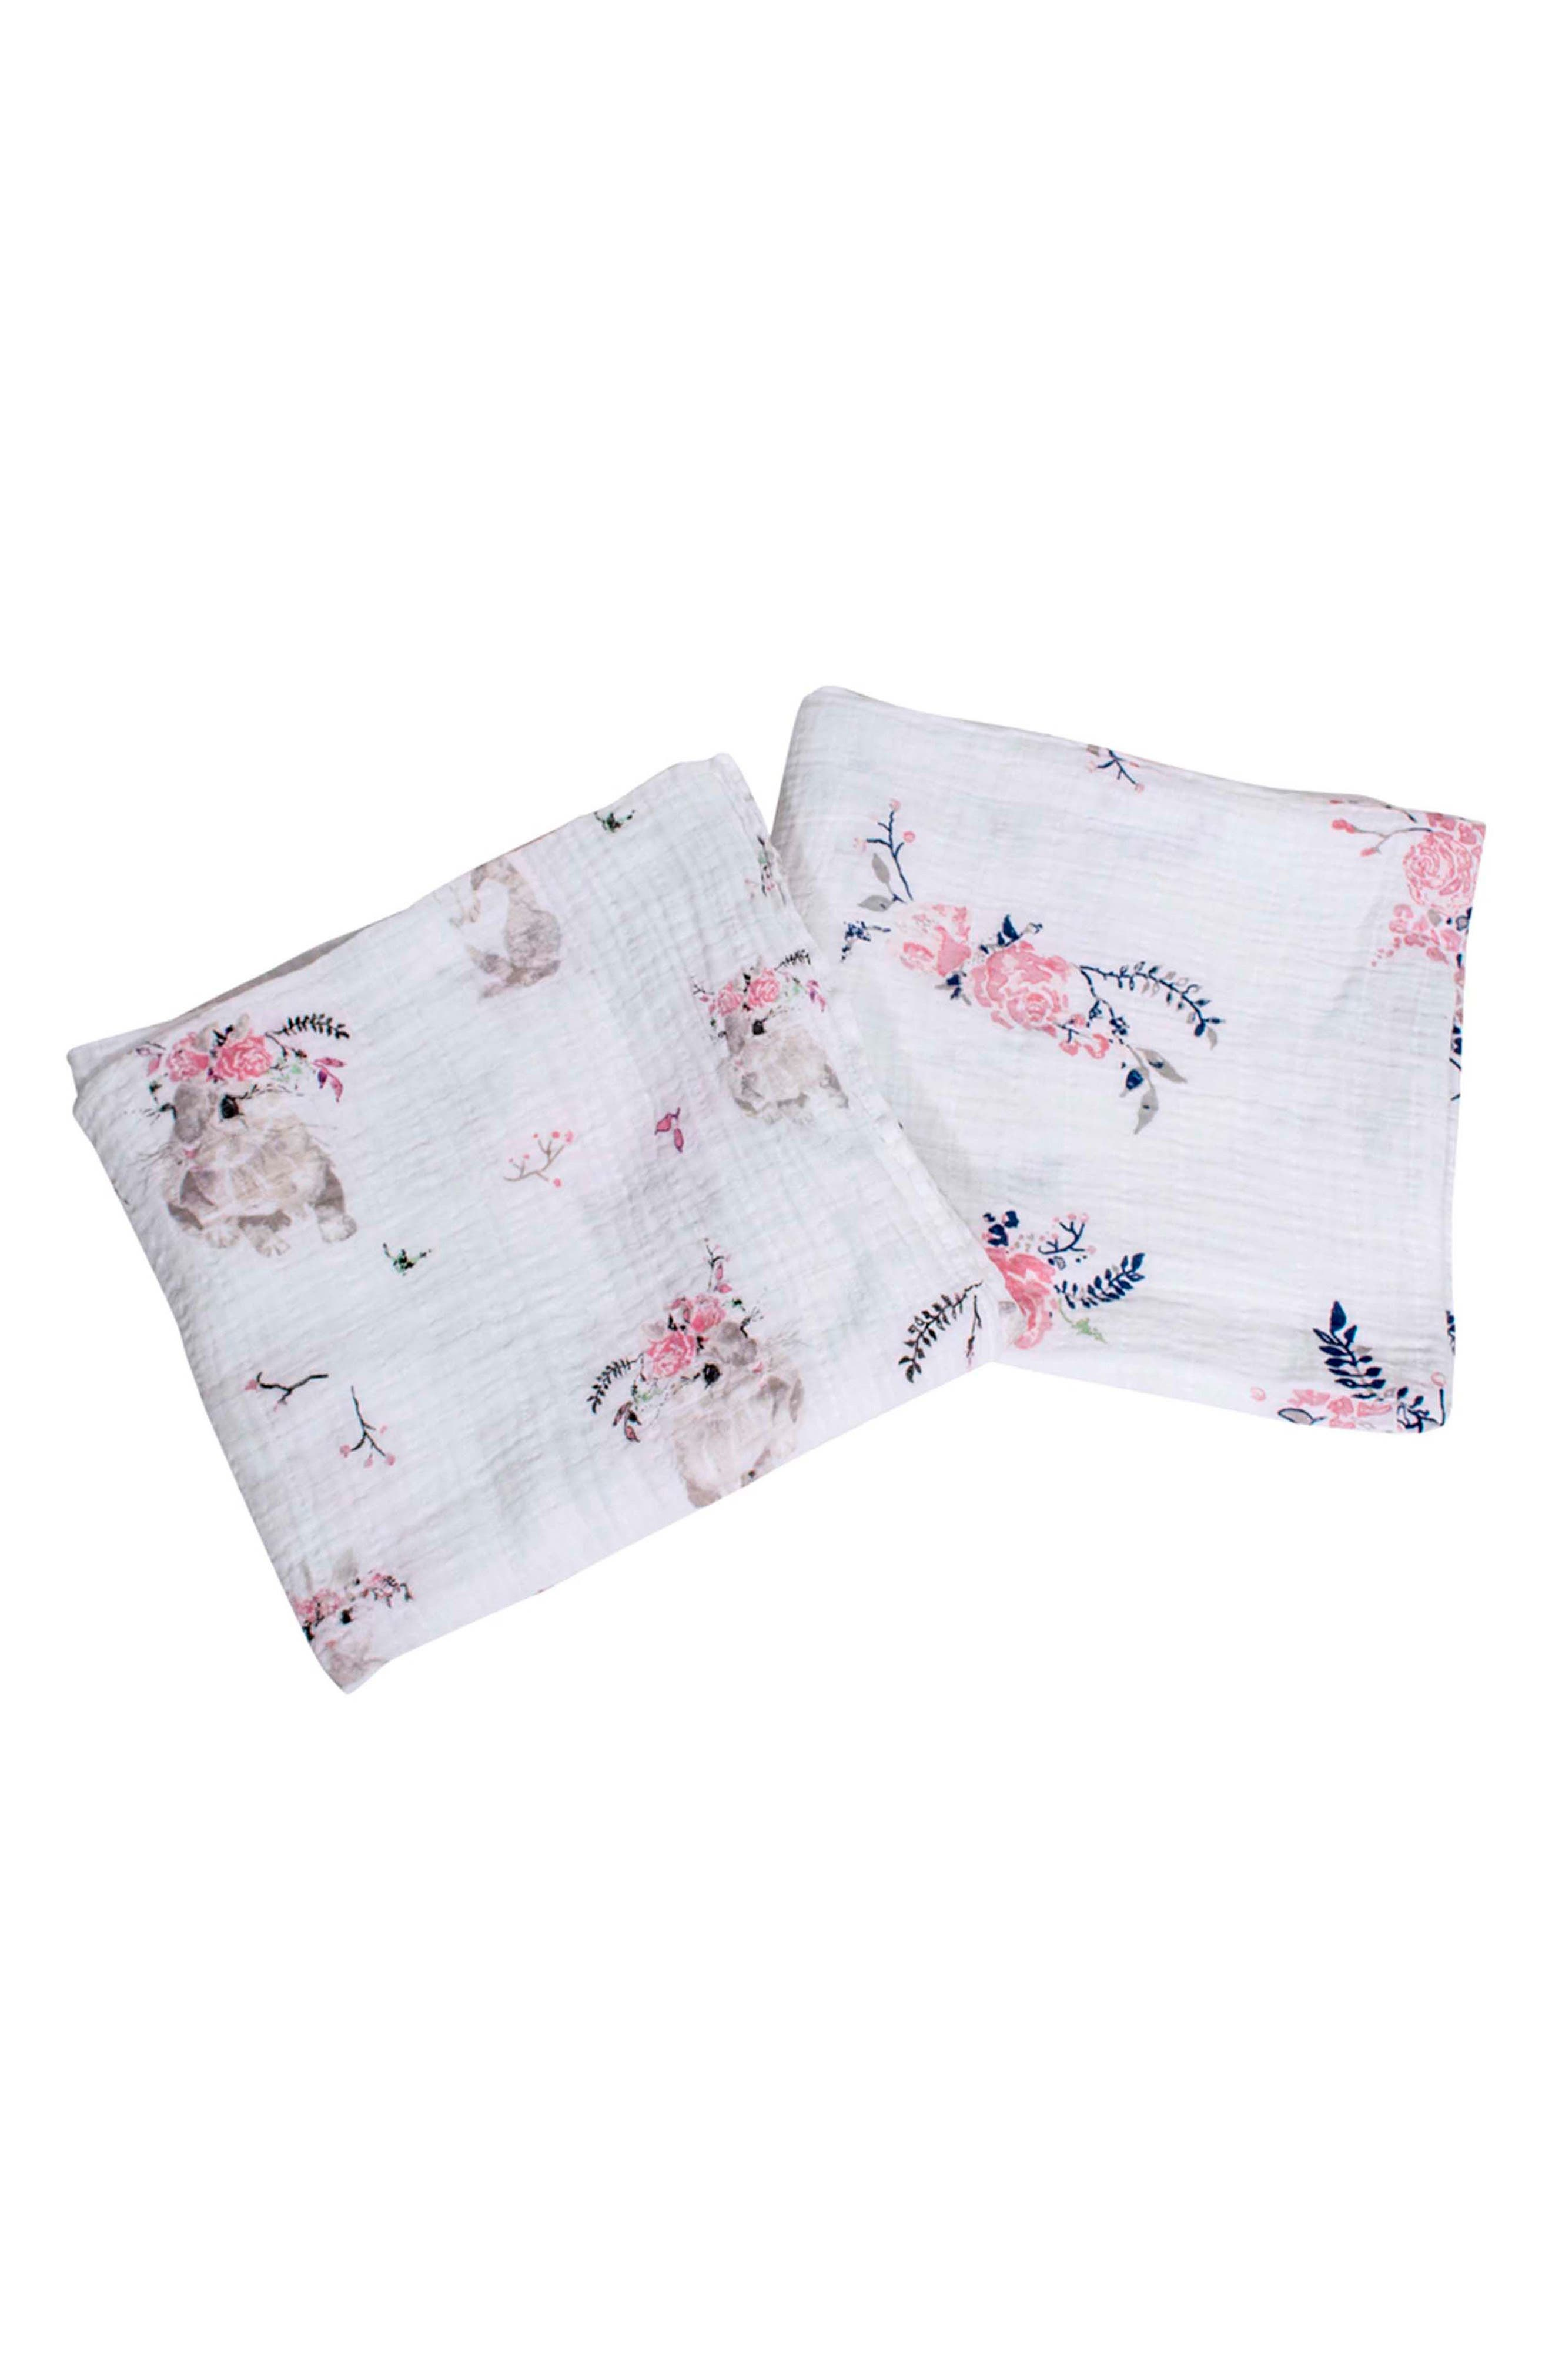 Classic 2-Pack Muslin Swaddle Blankets,                         Main,                         color, BUNNY TAILS/ GARLAND